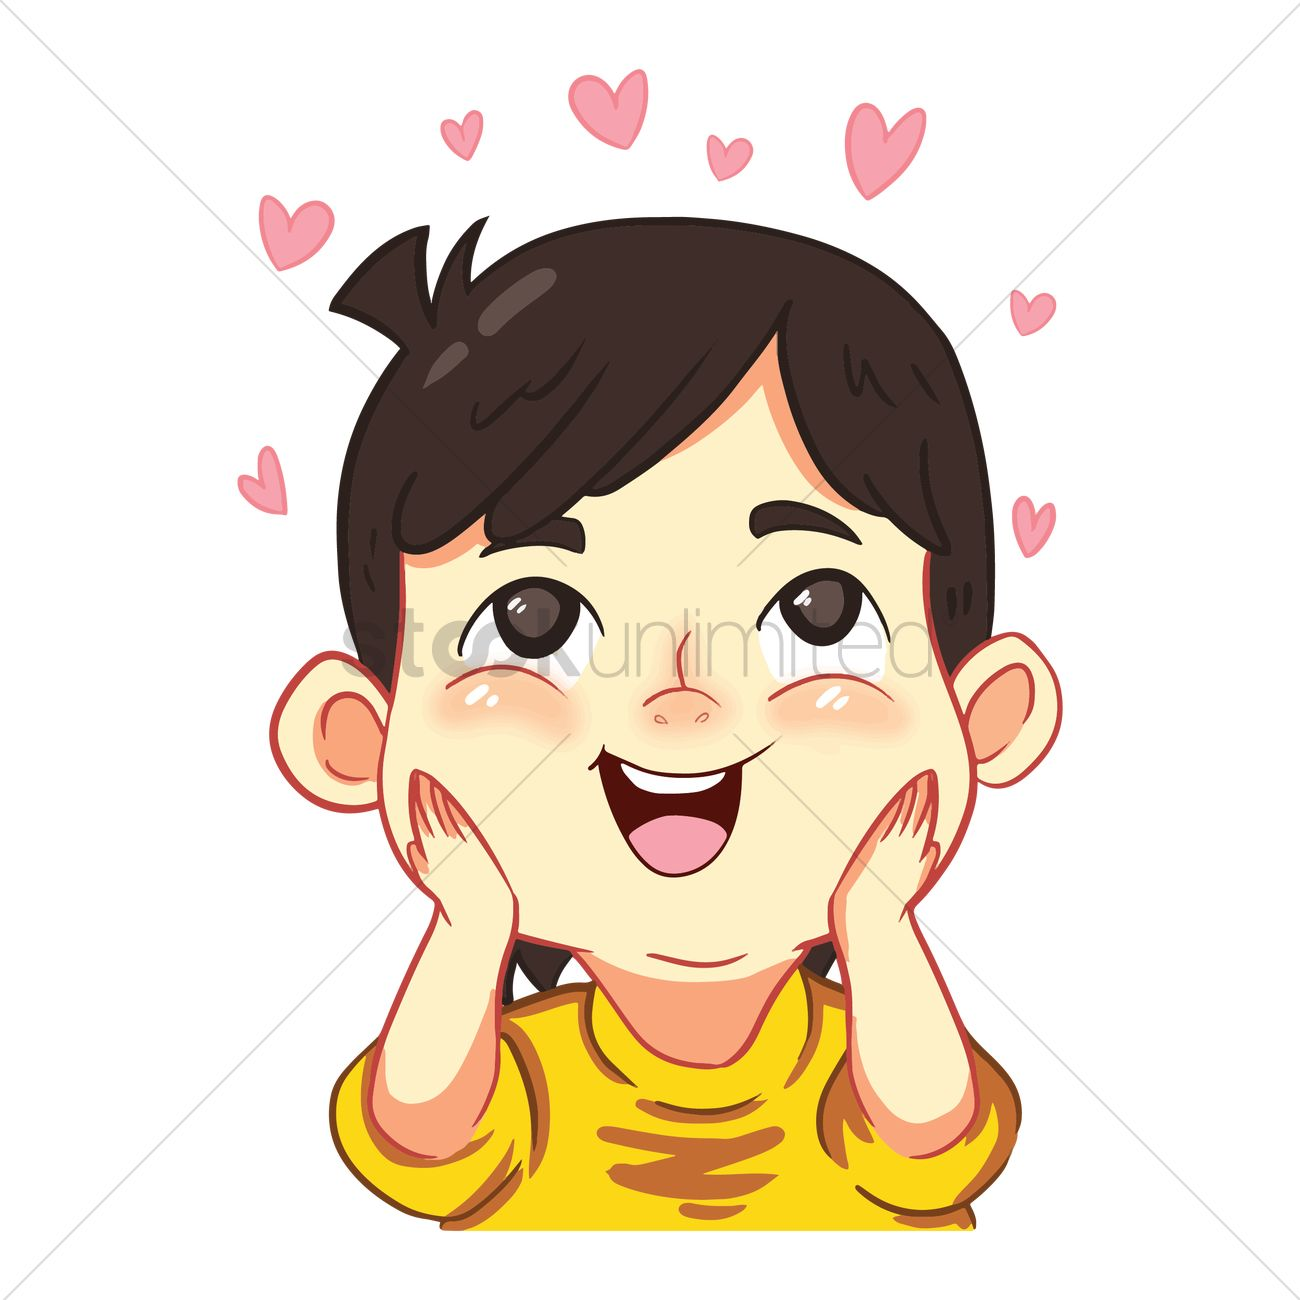 Boy in love Vector Image - 1955009   StockUnlimited